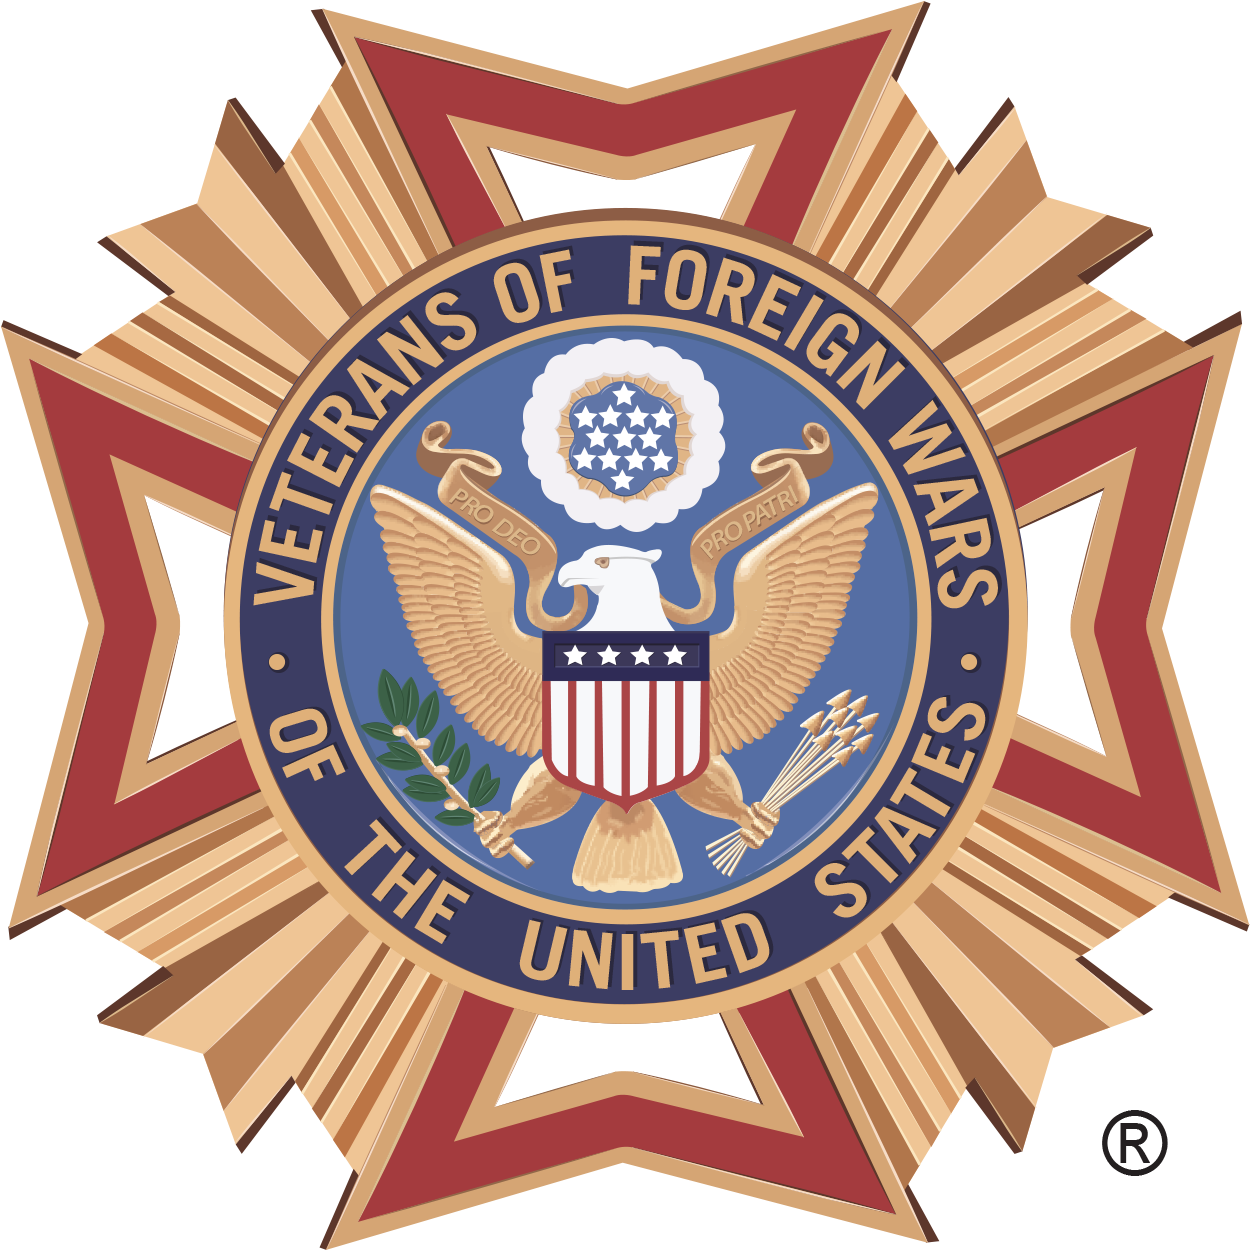 Vanguard Is Excited To Now Be Teamed With The Vfw - Veterans Of Foreign Wars Vector Logo (1314x1249)